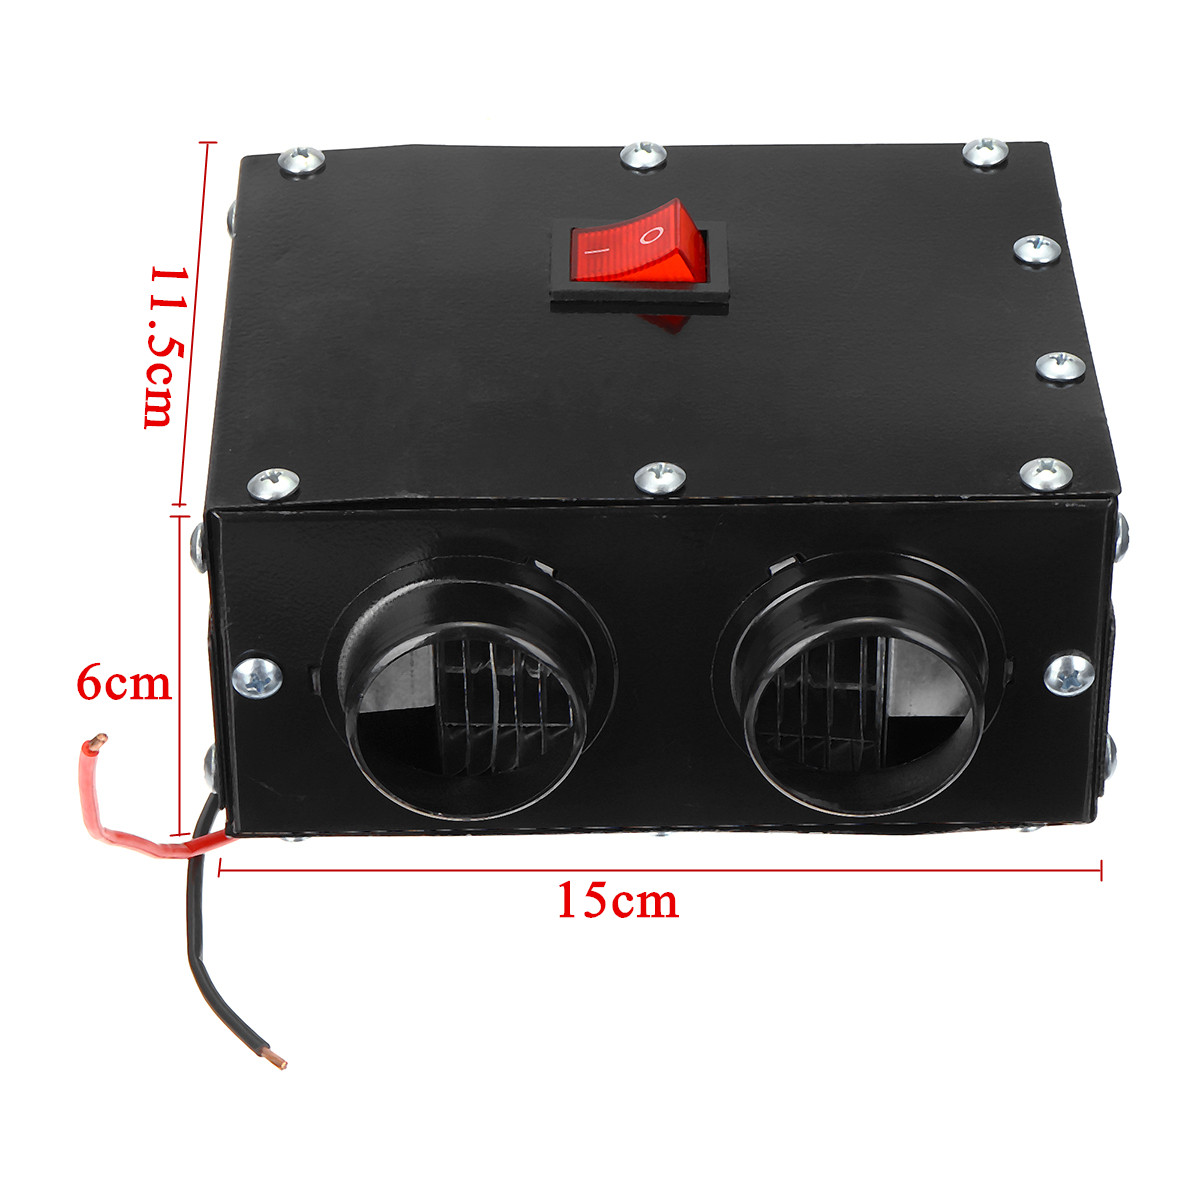 12V 600W Dual Hole Car Heating Warmer Thermostat Fan Window Defroster Demister